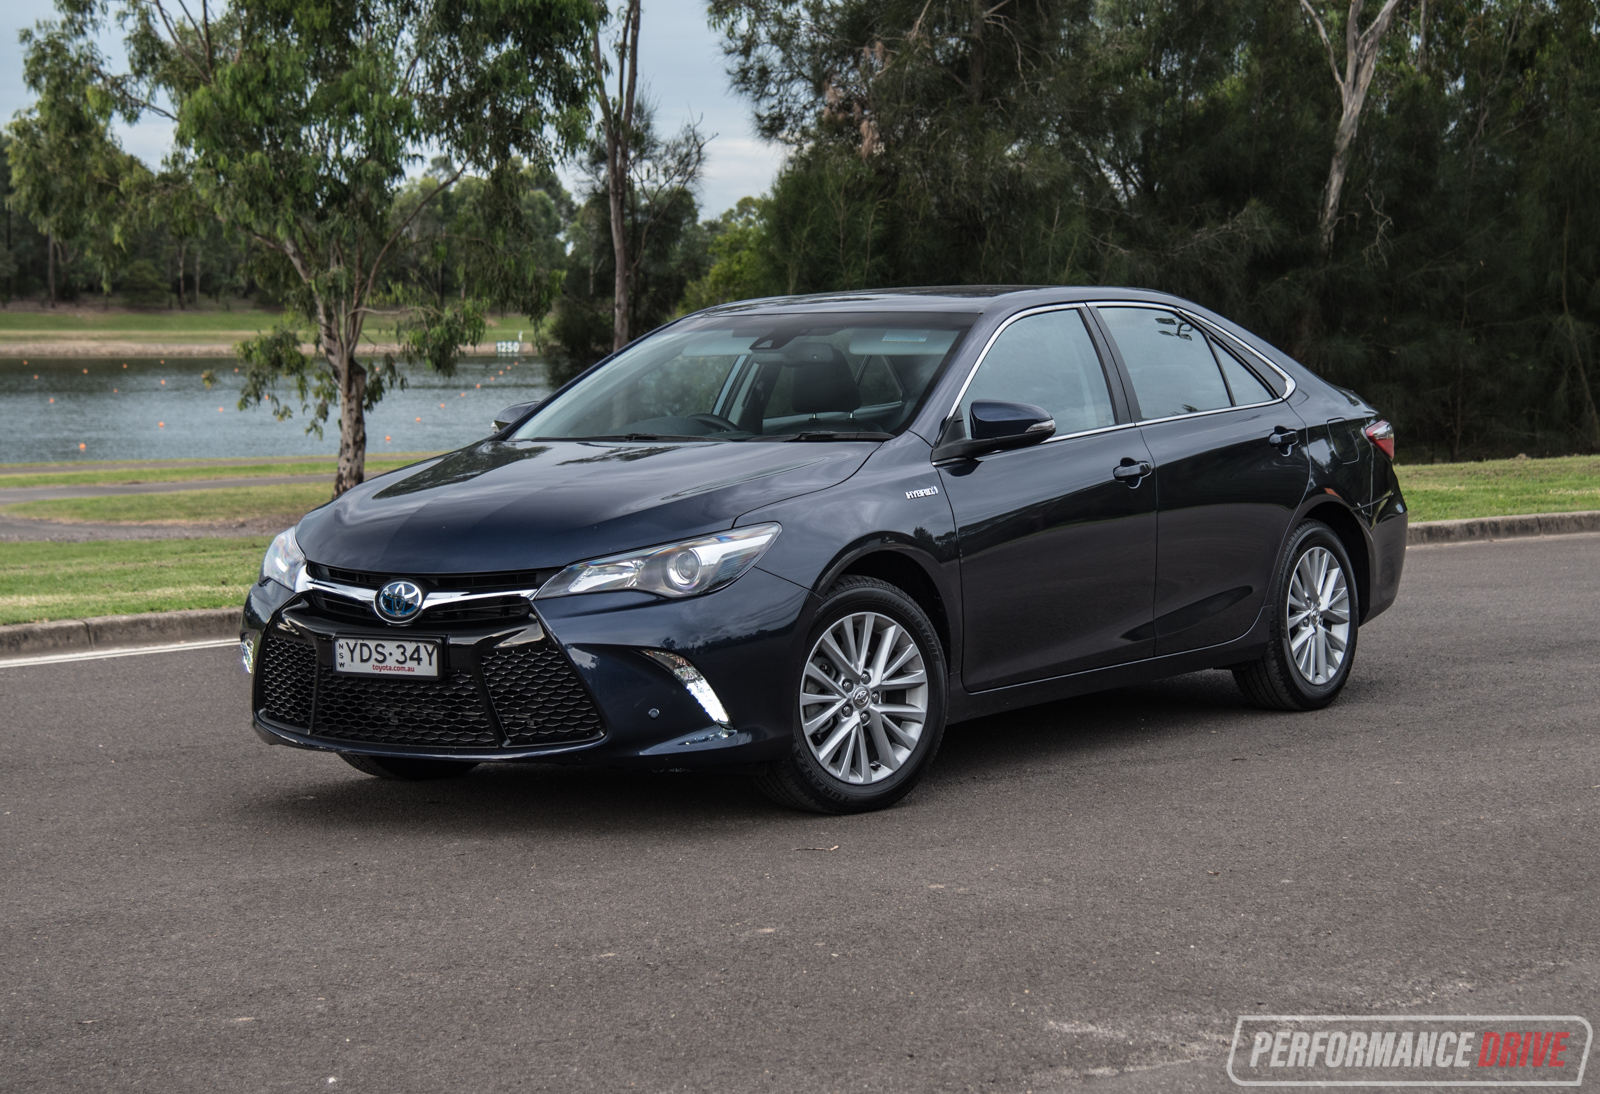 Toyota New Car 2017 >> 2017 Toyota Camry Hybrid Atara SL review (video) | PerformanceDrive